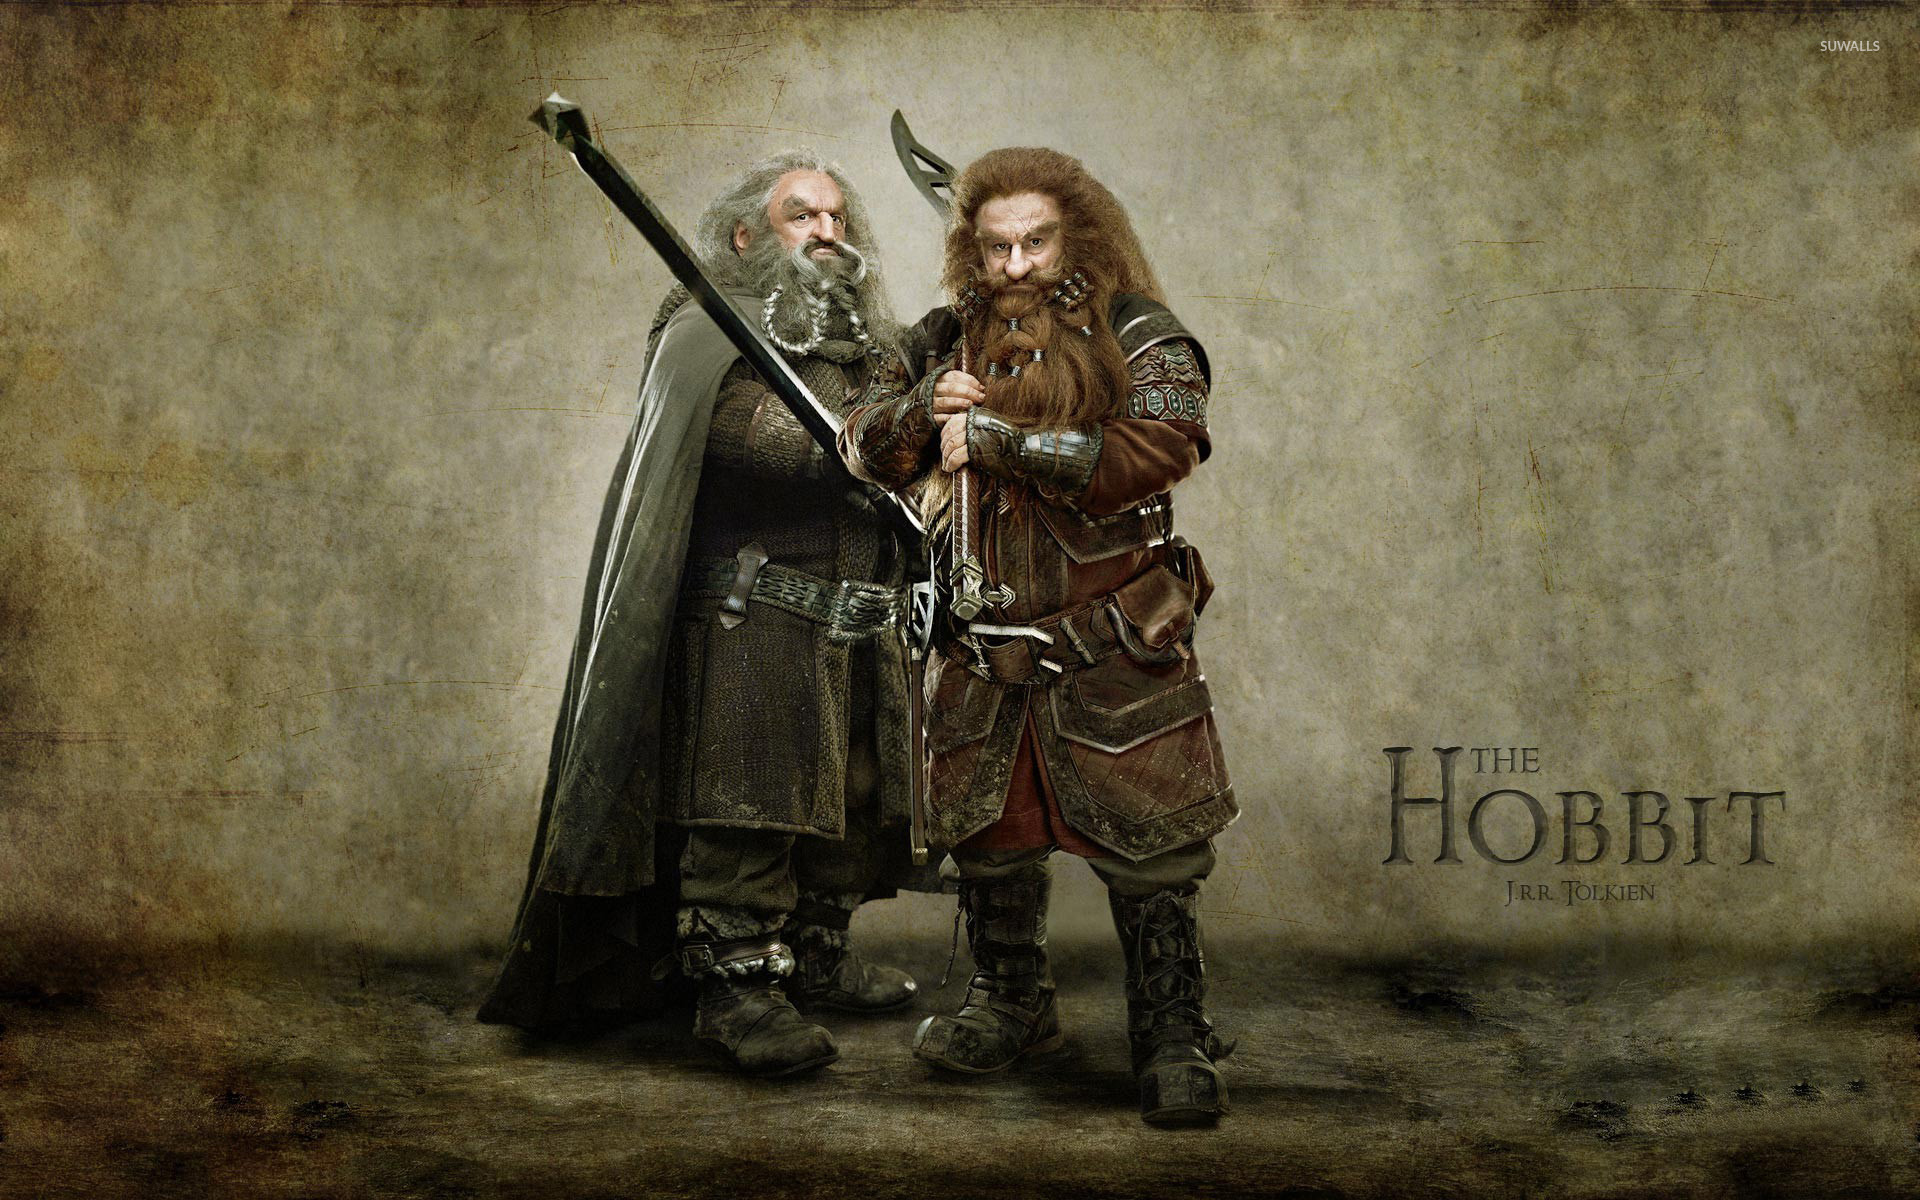 The Hobbit wallpaper   Movie wallpapers   11338 1366x768